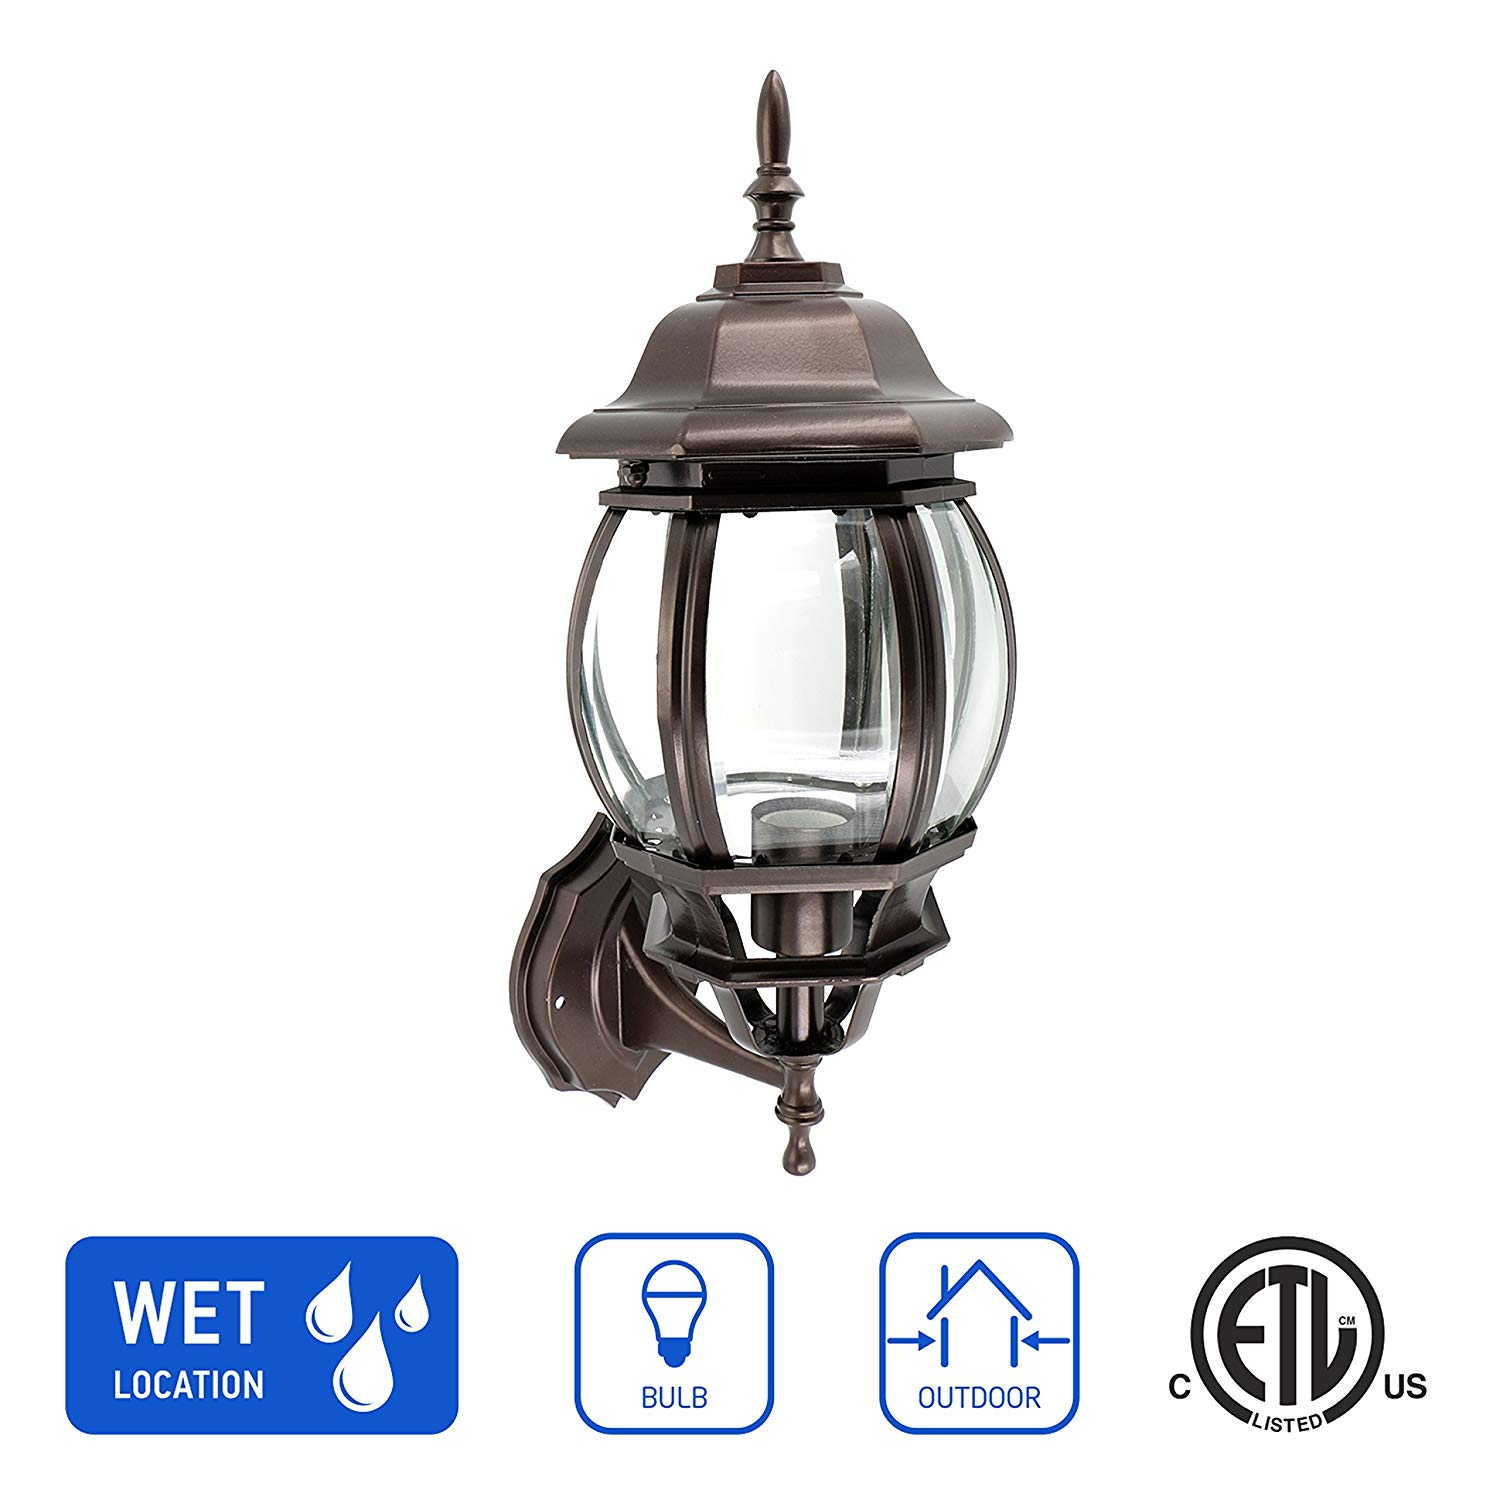 IN HOME 1-Light Outdoor Exterior Wall Up Lantern, Traditional Porch Patio Lighting Fixture L08 with One E26 Base, Water-Proof, Bronze Cast Aluminum Housing, Clear Glass Panels, ETL Listed